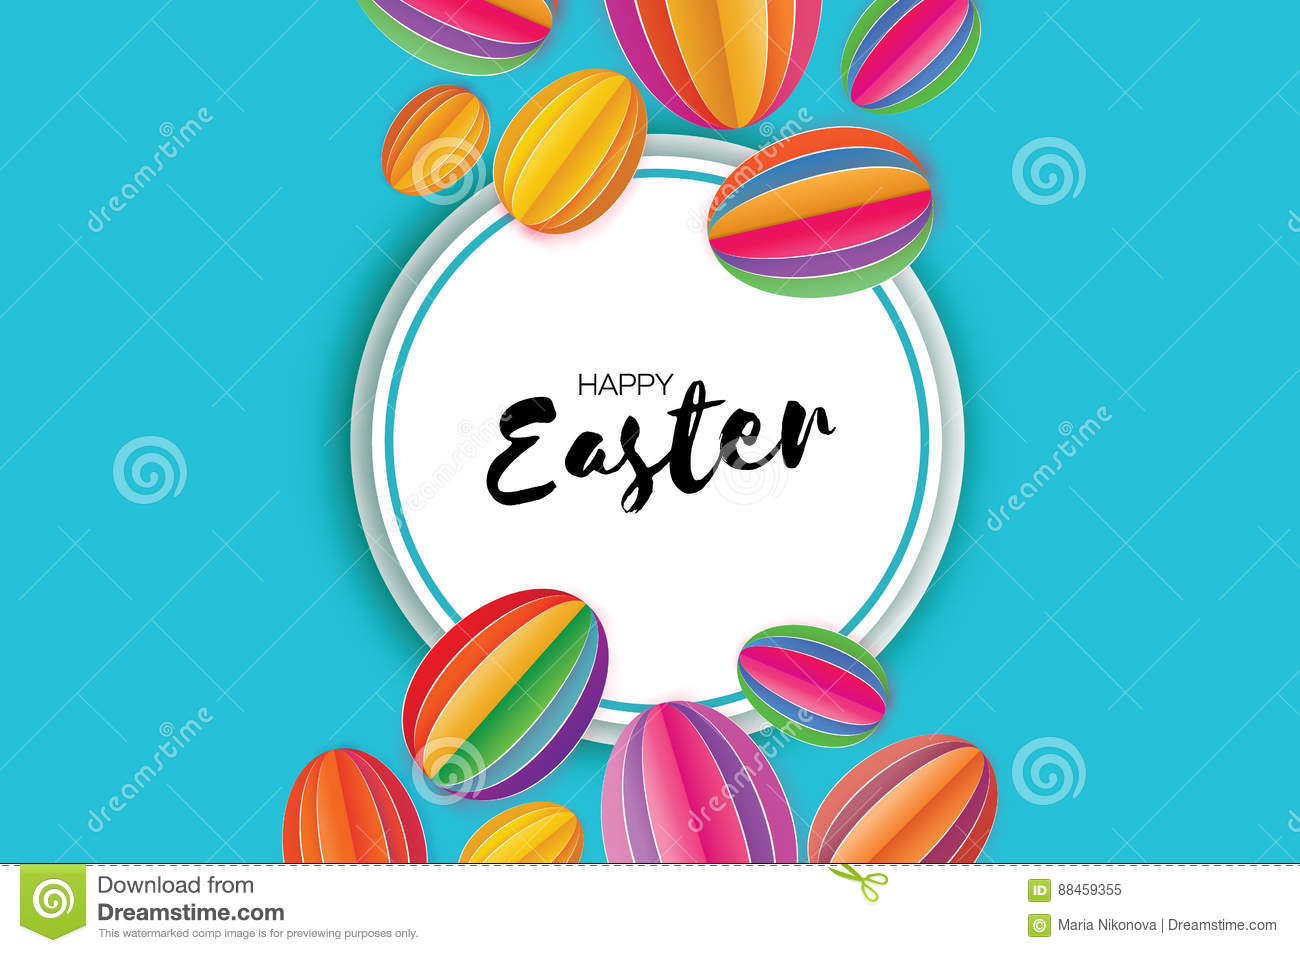 Origami Happy Easter. Colorful Paper Cut Easter Egg